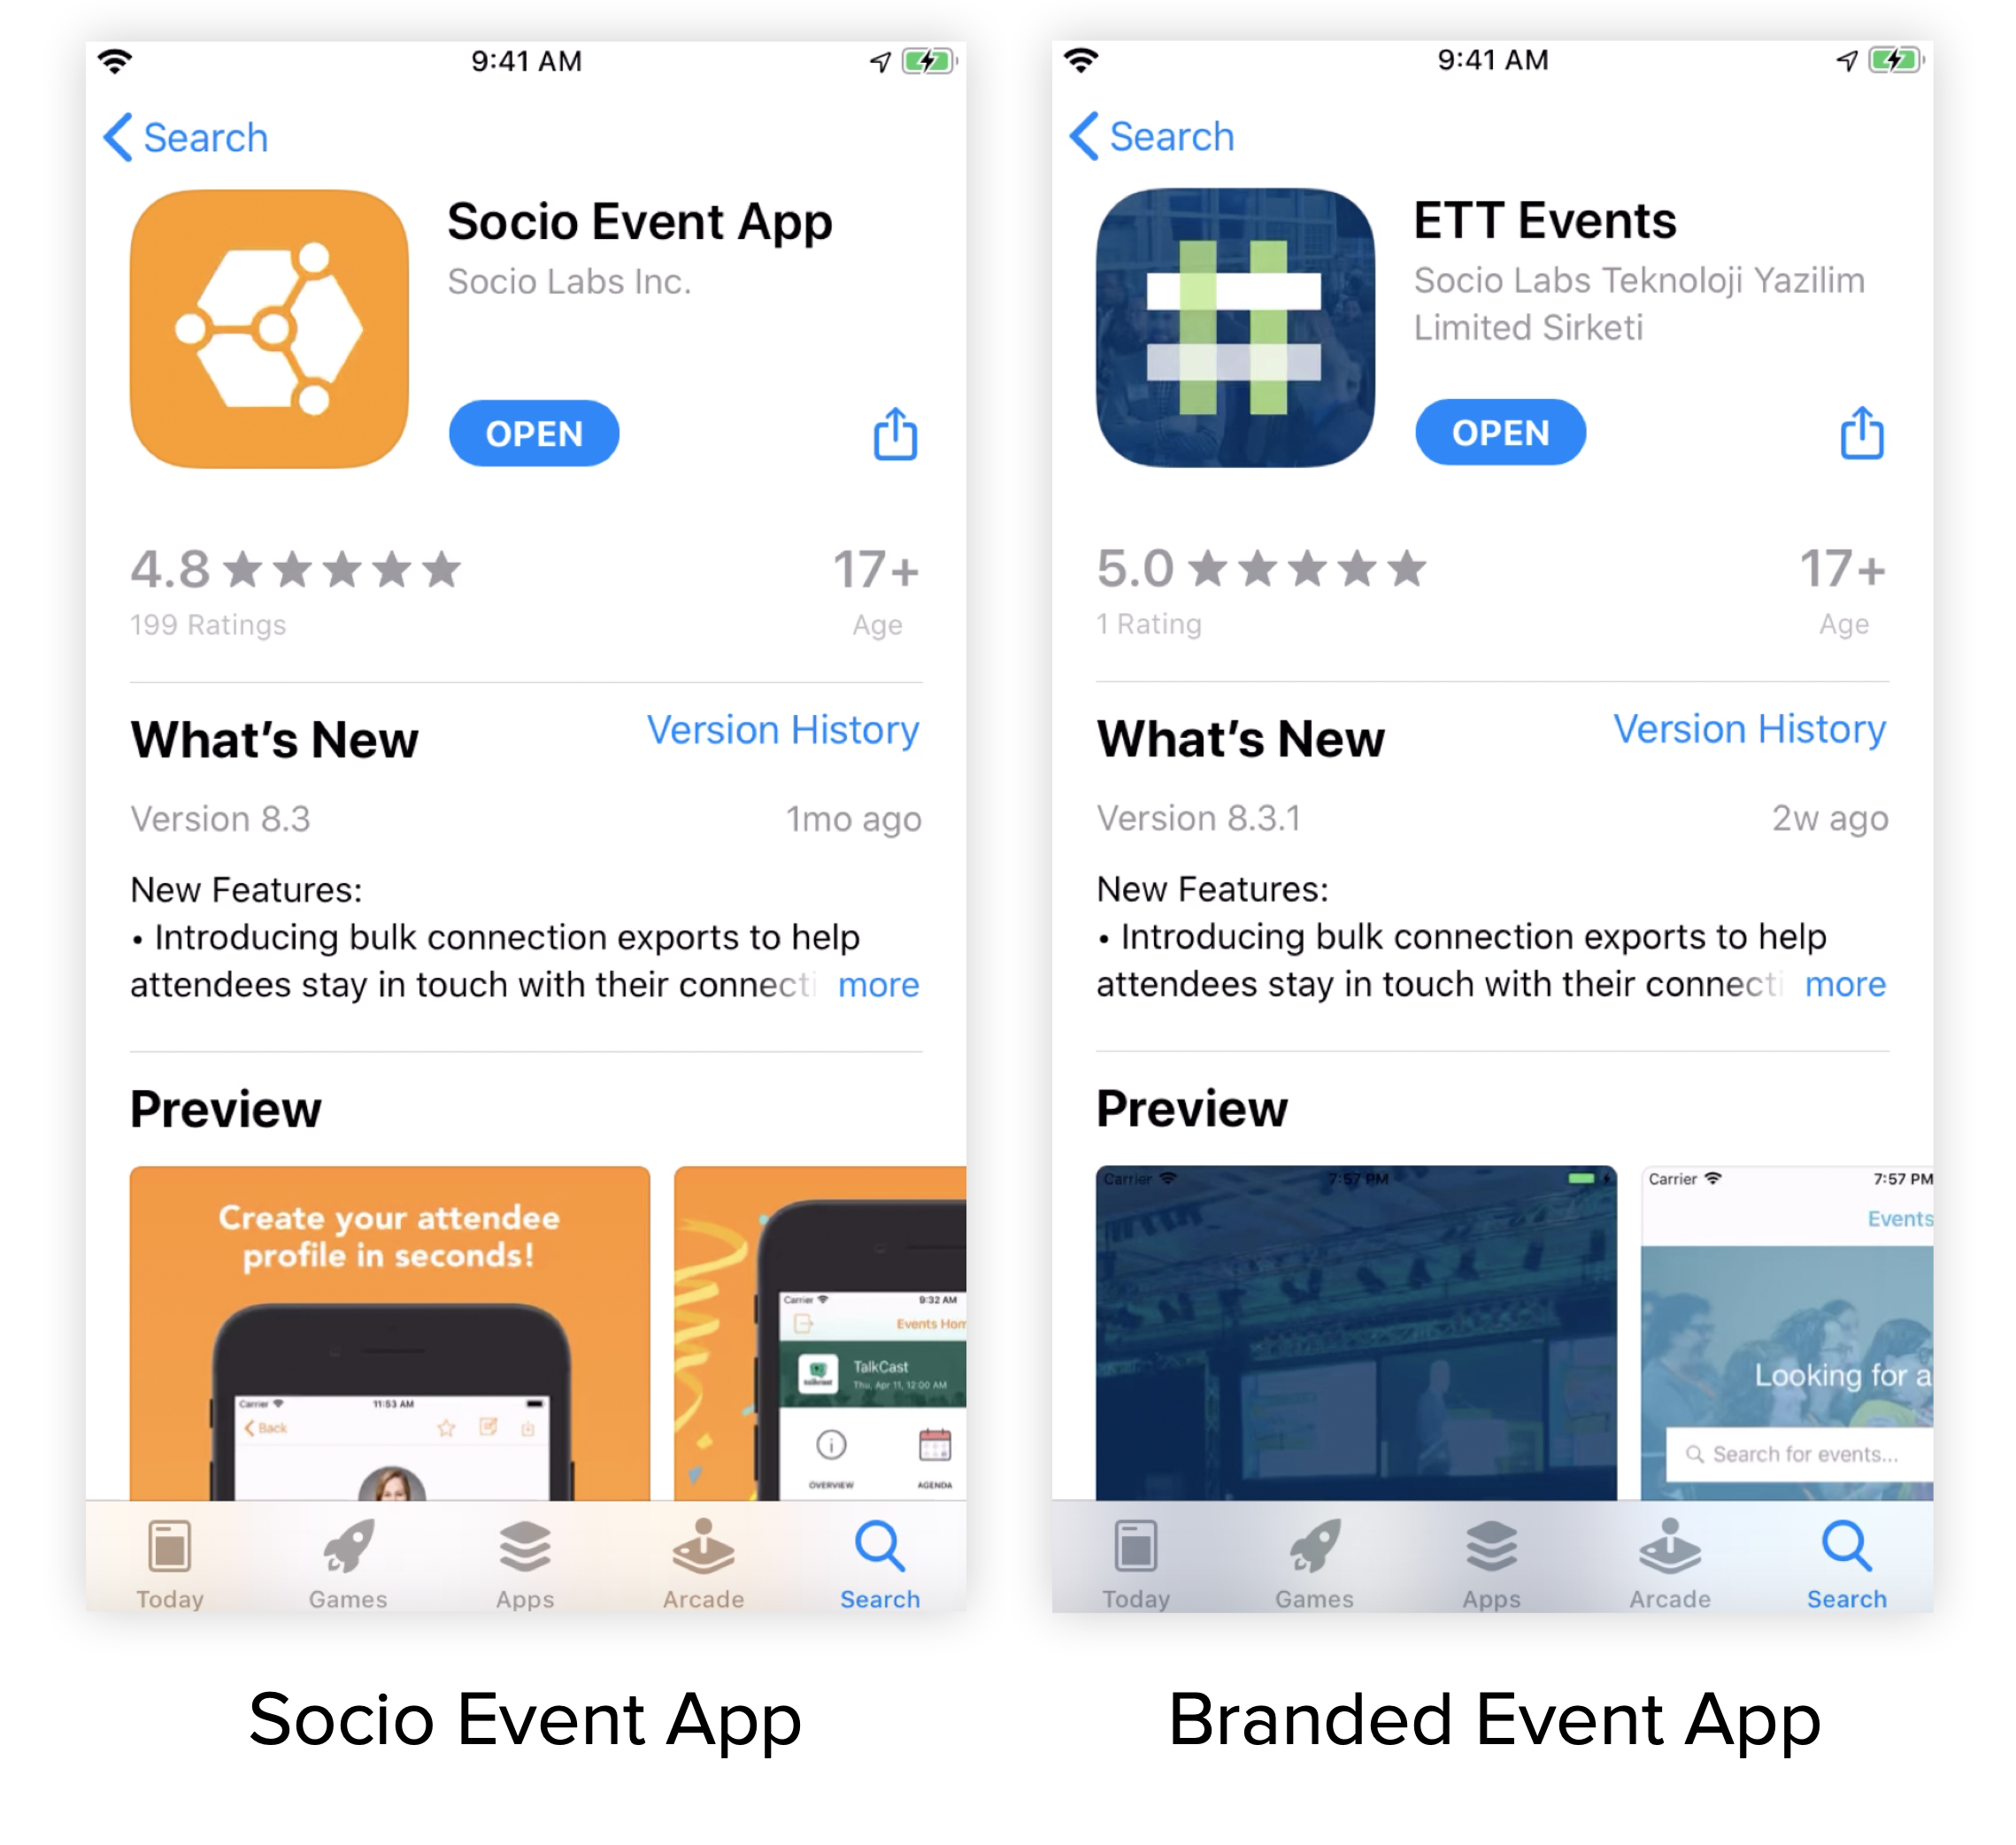 Two screenshots. One of the Socio Event App in the Apple App Store, and the other of a Branded App.